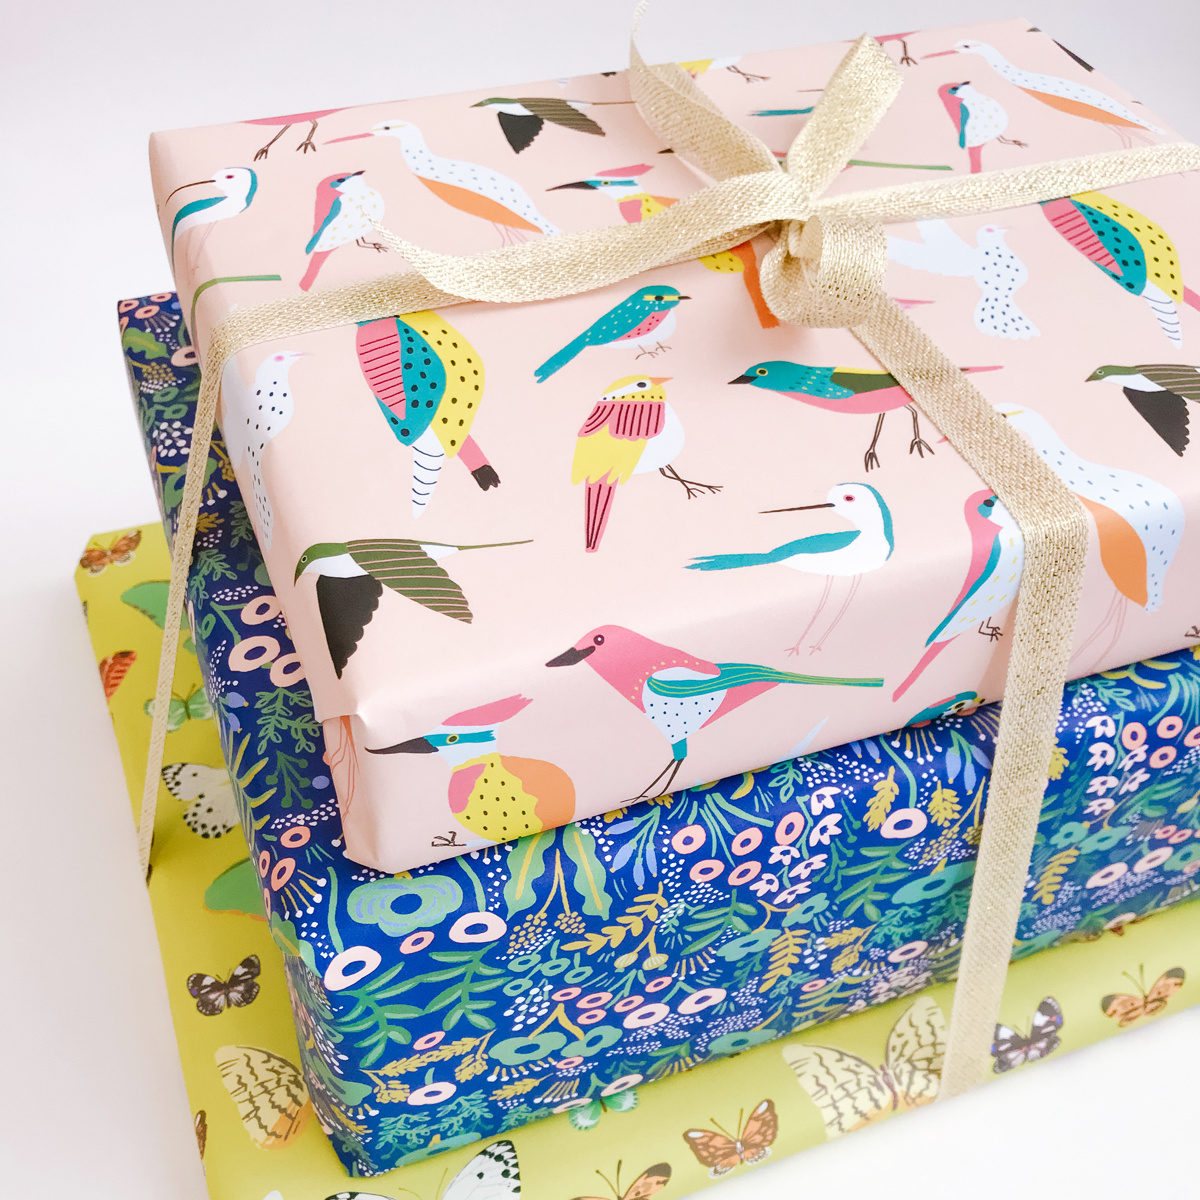 Gus and Ruby Letterpress - GR Please Gift Wrap My Online Order